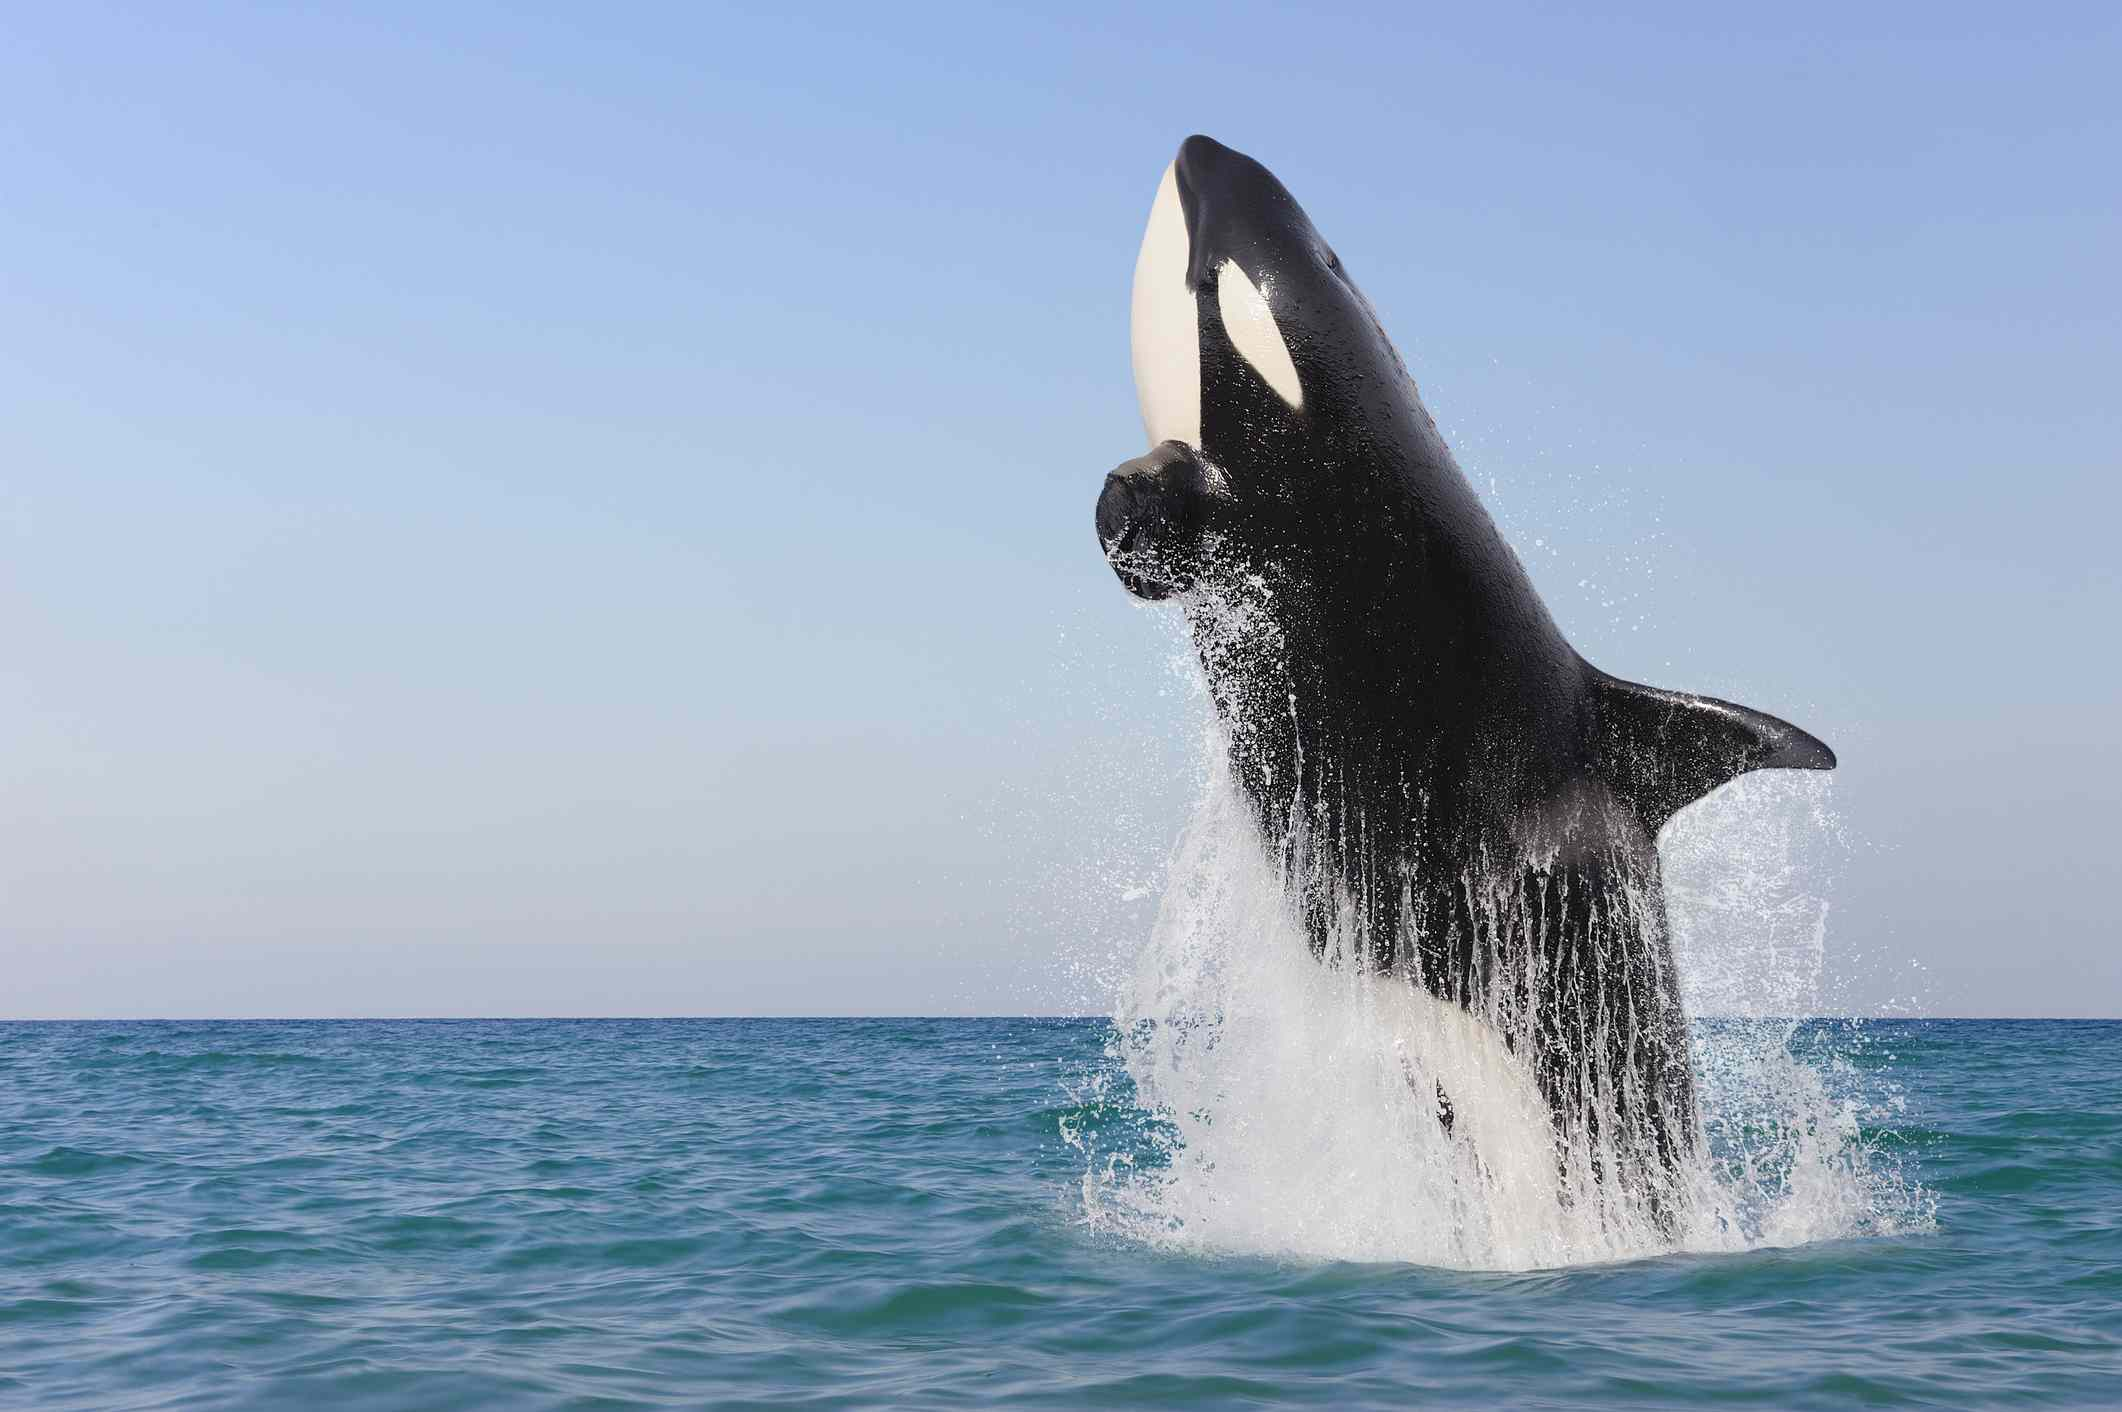 Killer whale jumping out of the water.